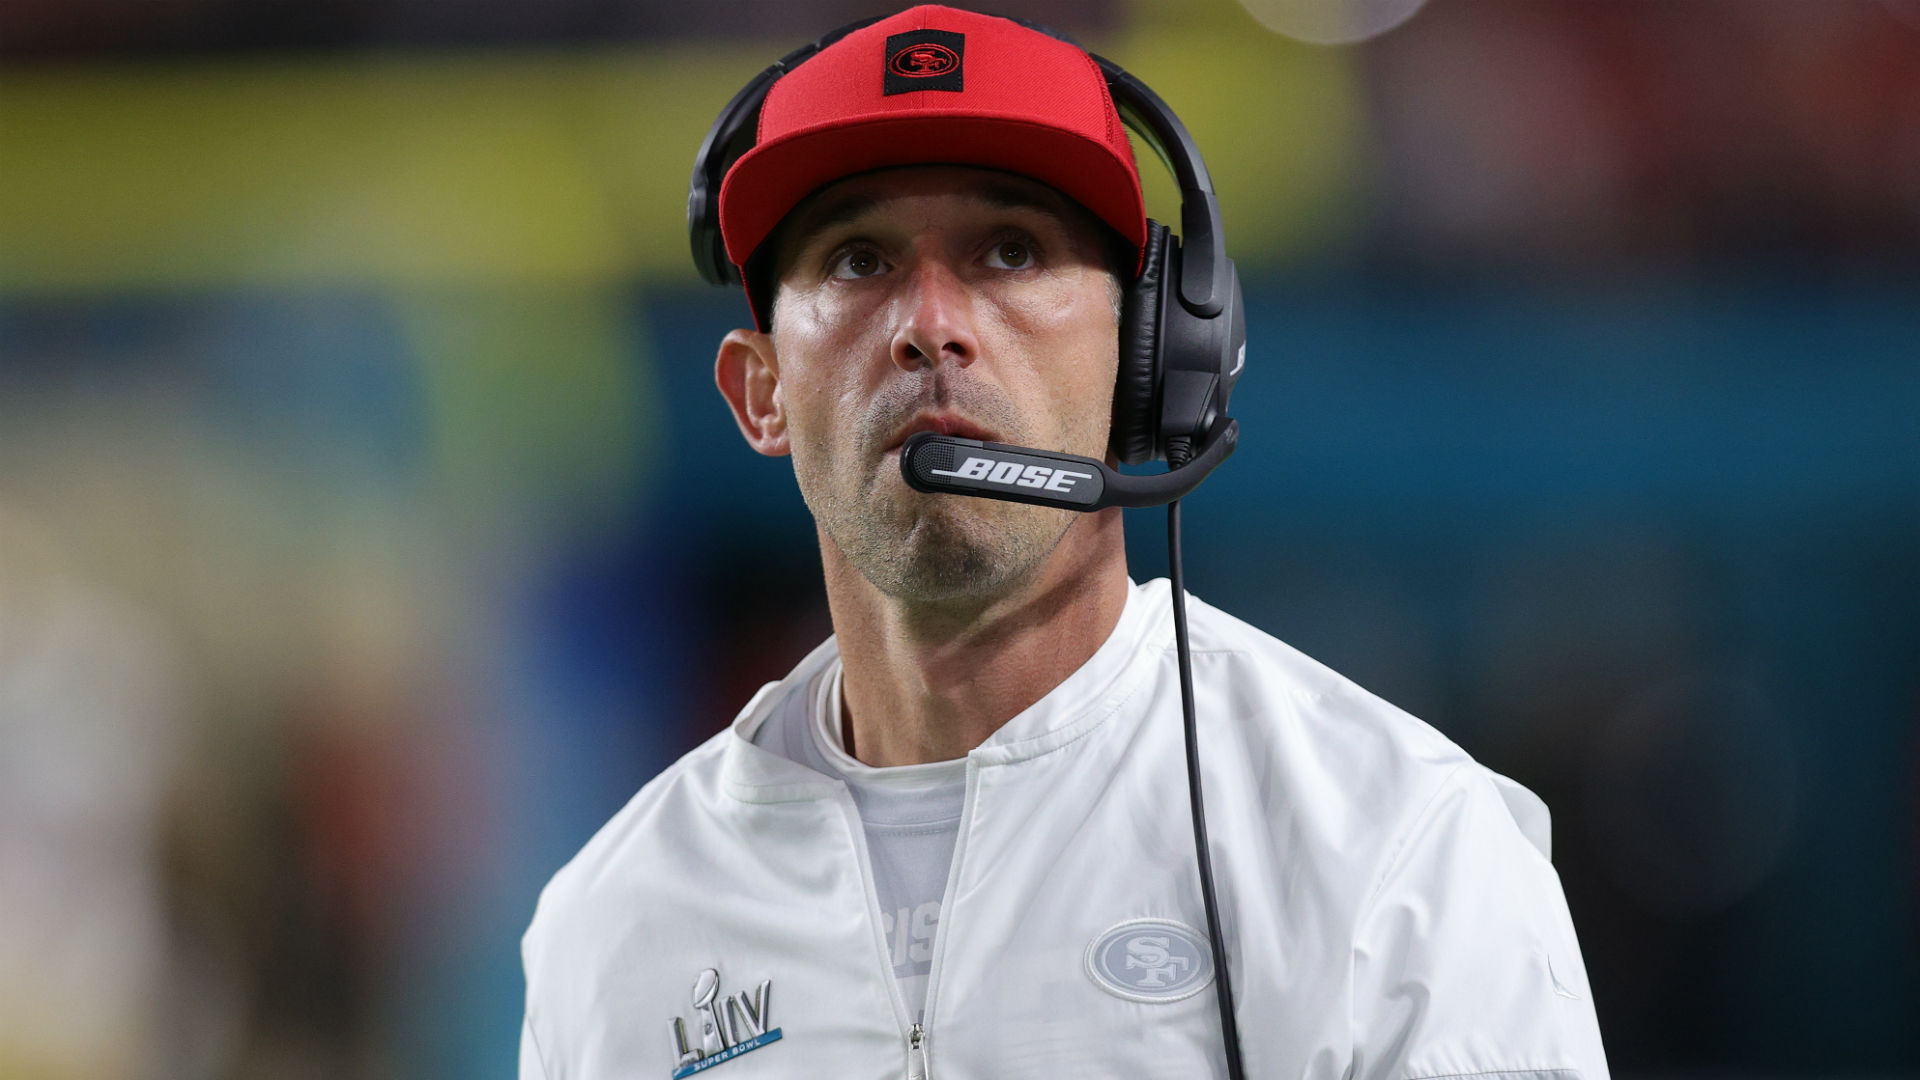 49ers players reportedly informed Kyle Shanahan that they surrendered to Sunday